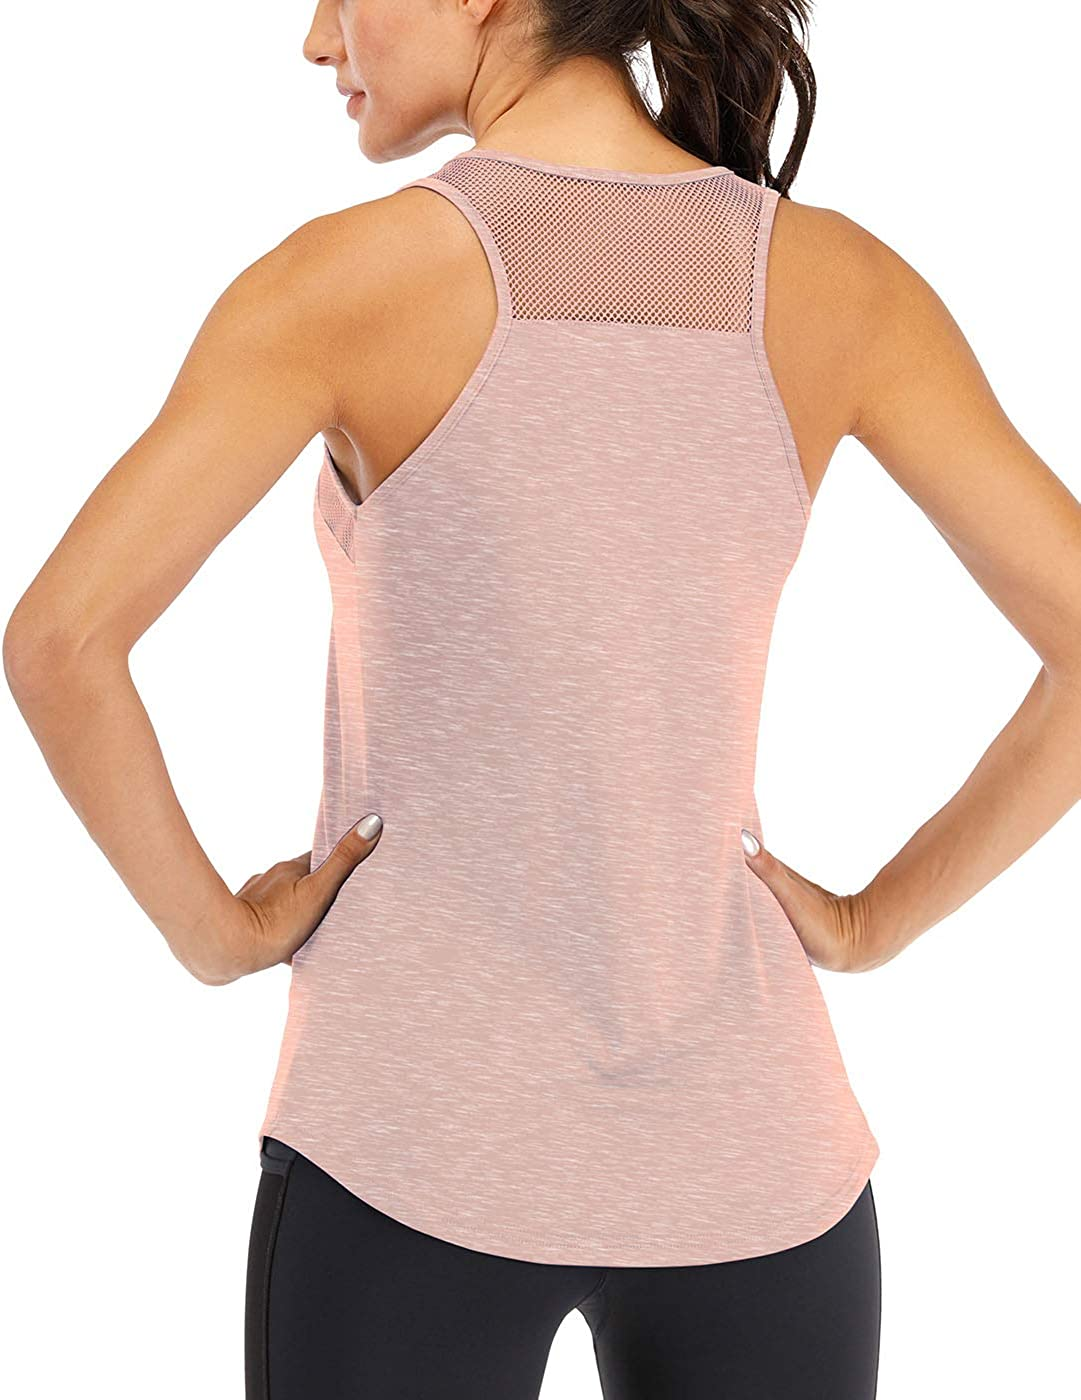 Exercise Tank Goddess Vibes Muscle Tank Gym Shirt Flowy Scoop Neck Workout Tank For Women